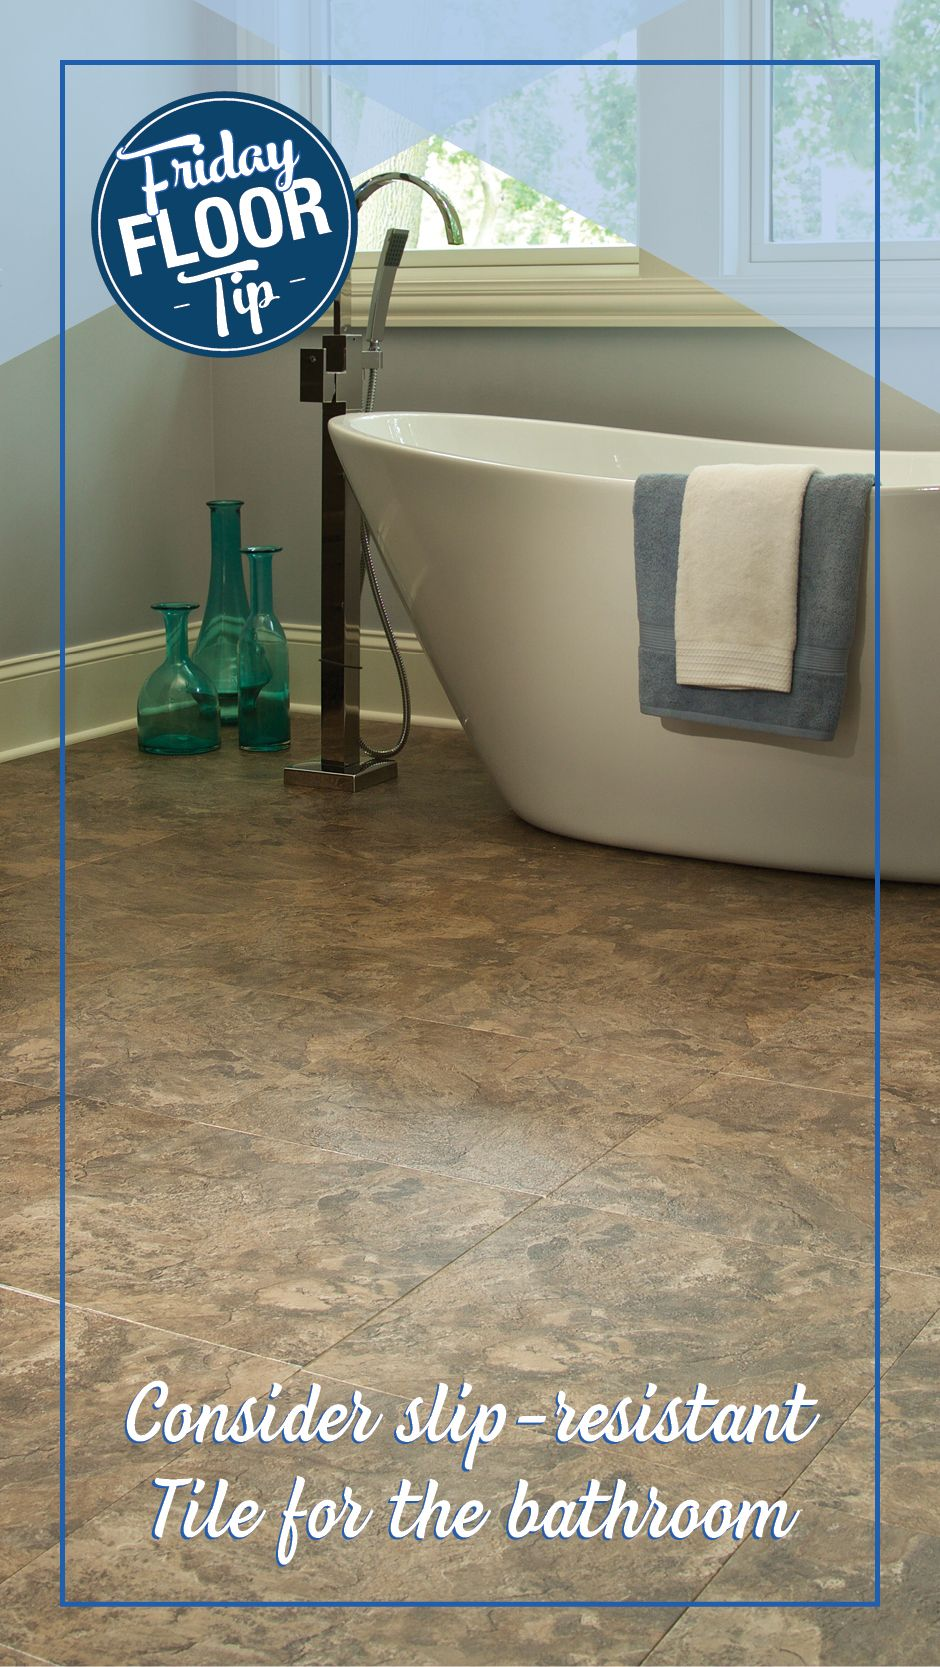 Make Your Home Safer With Slip Resistant Tile Schedule A Free Estimate With Empire Today And Explore Our Variou Slip Resistant Tiles Flooring Flooring Options